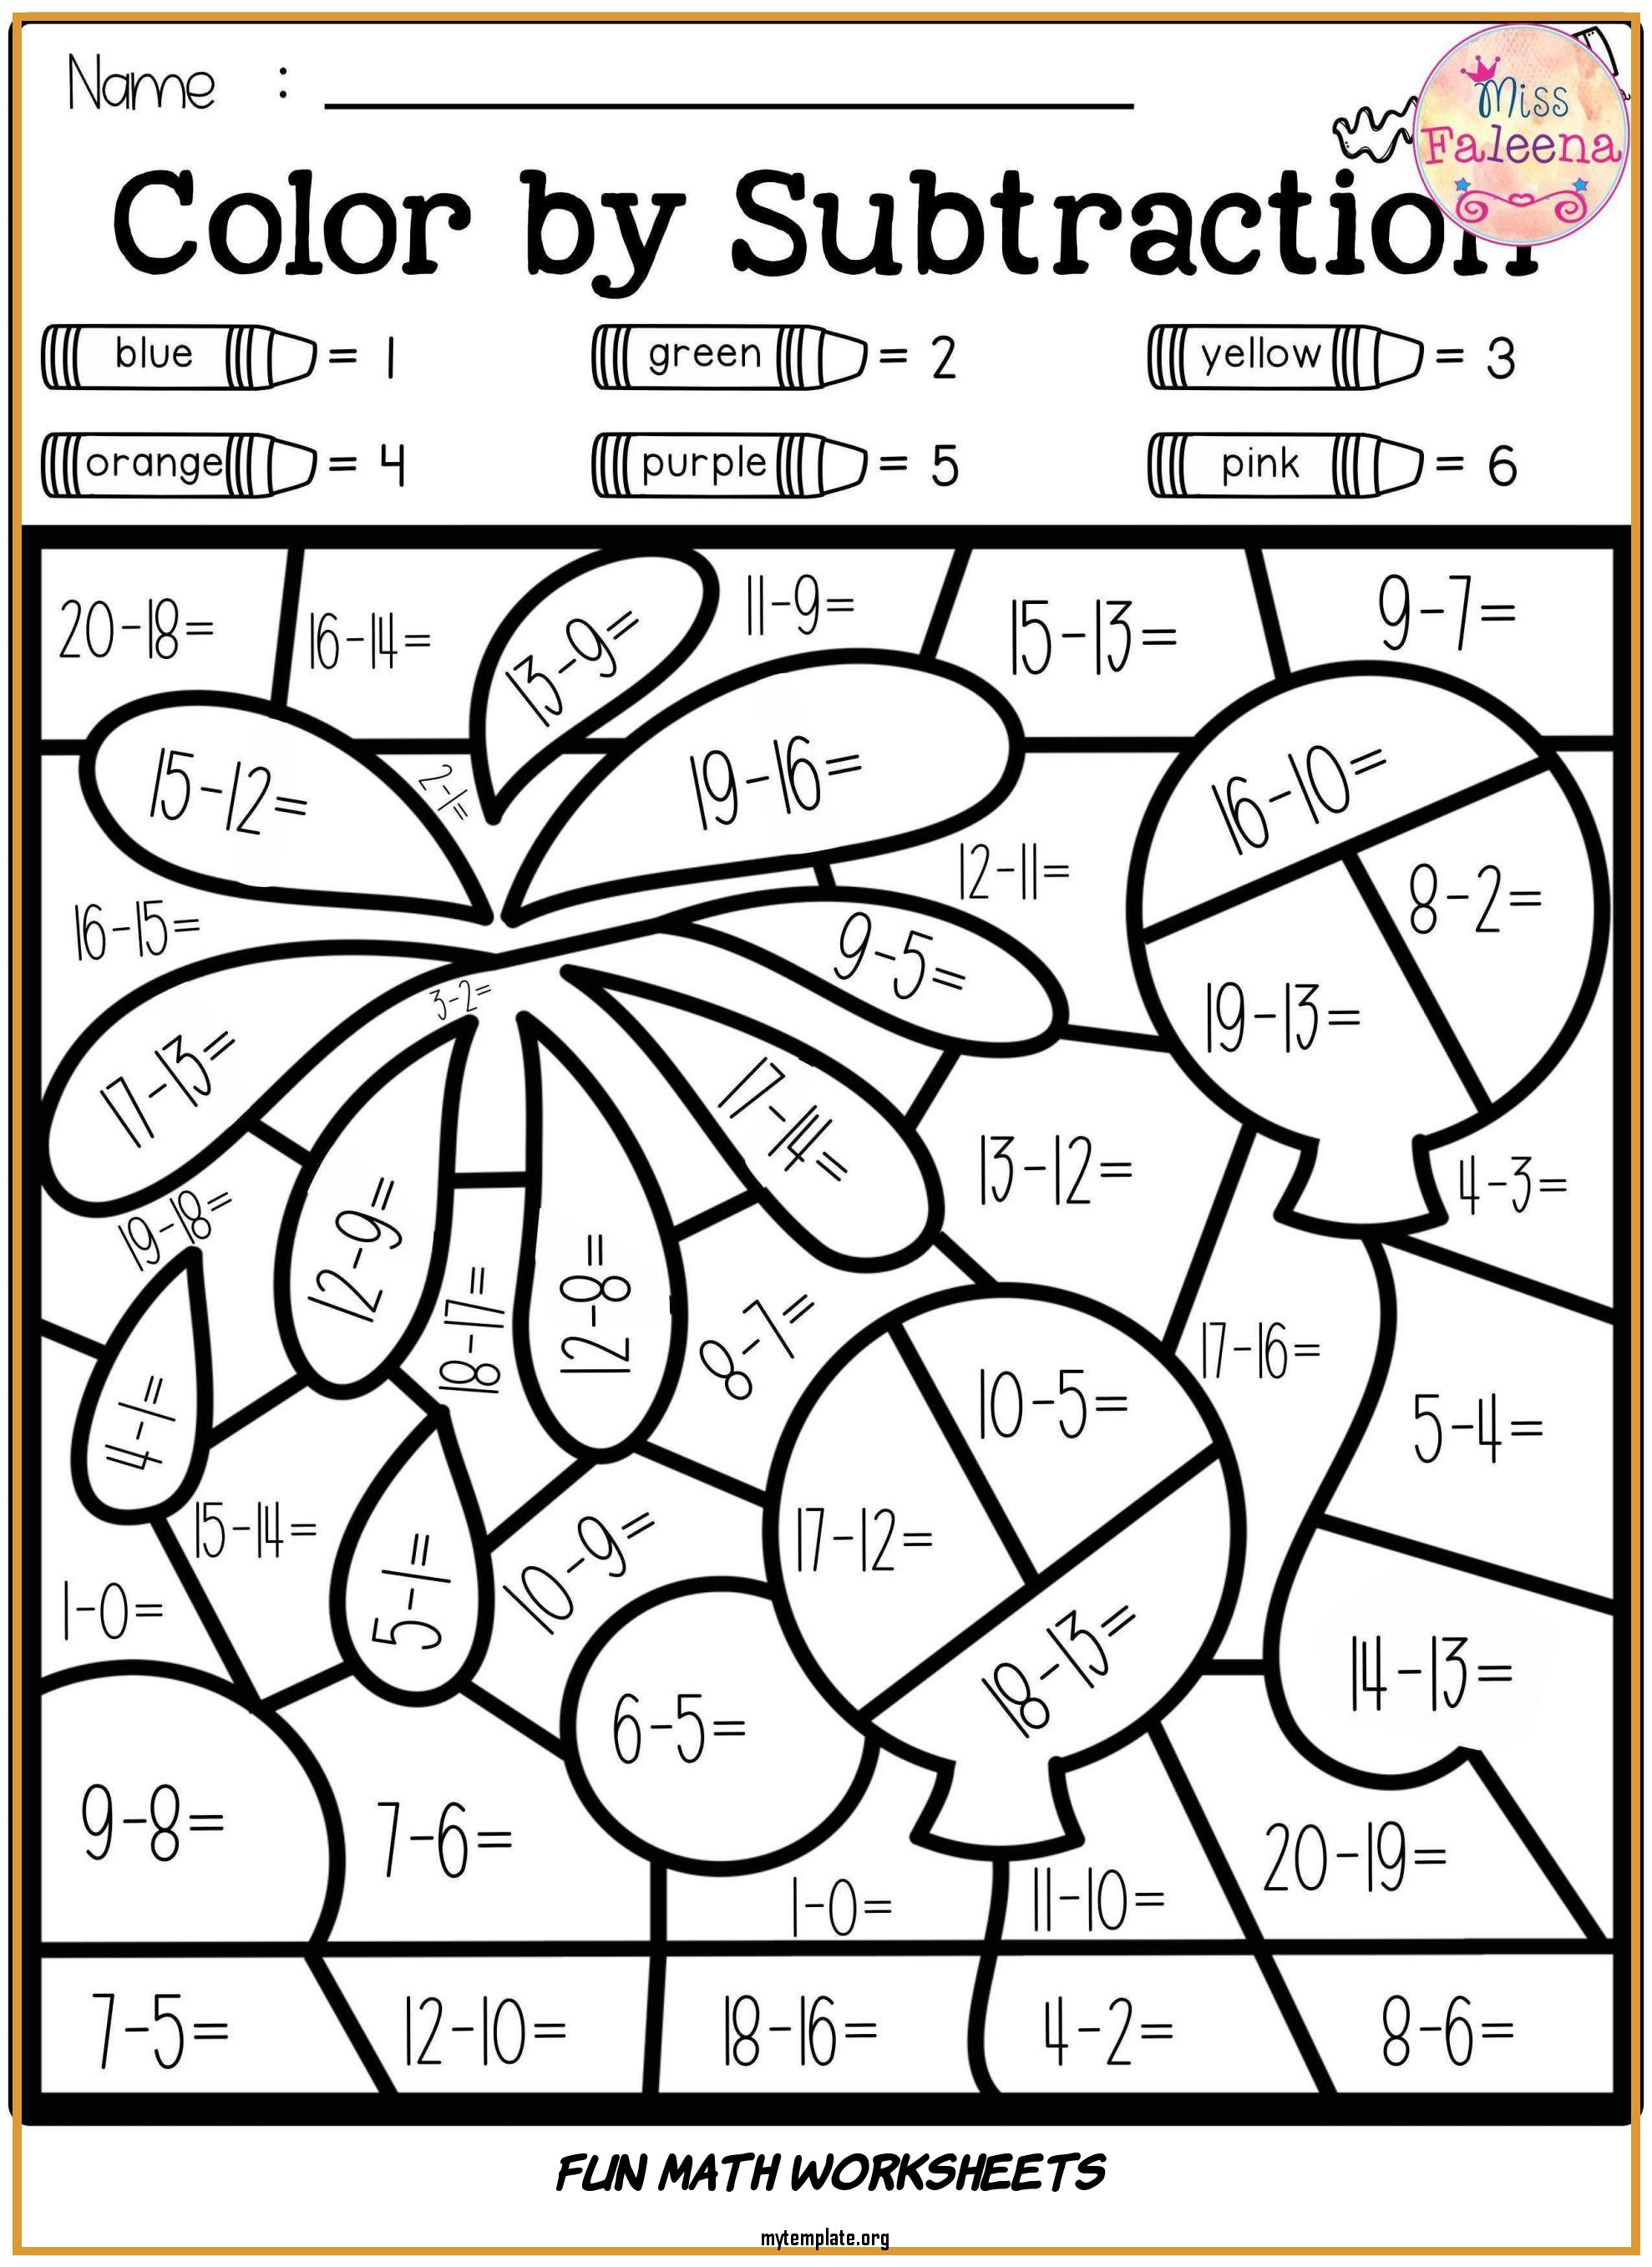 medium resolution of 7 Fun Math Worksheets - Free Templates